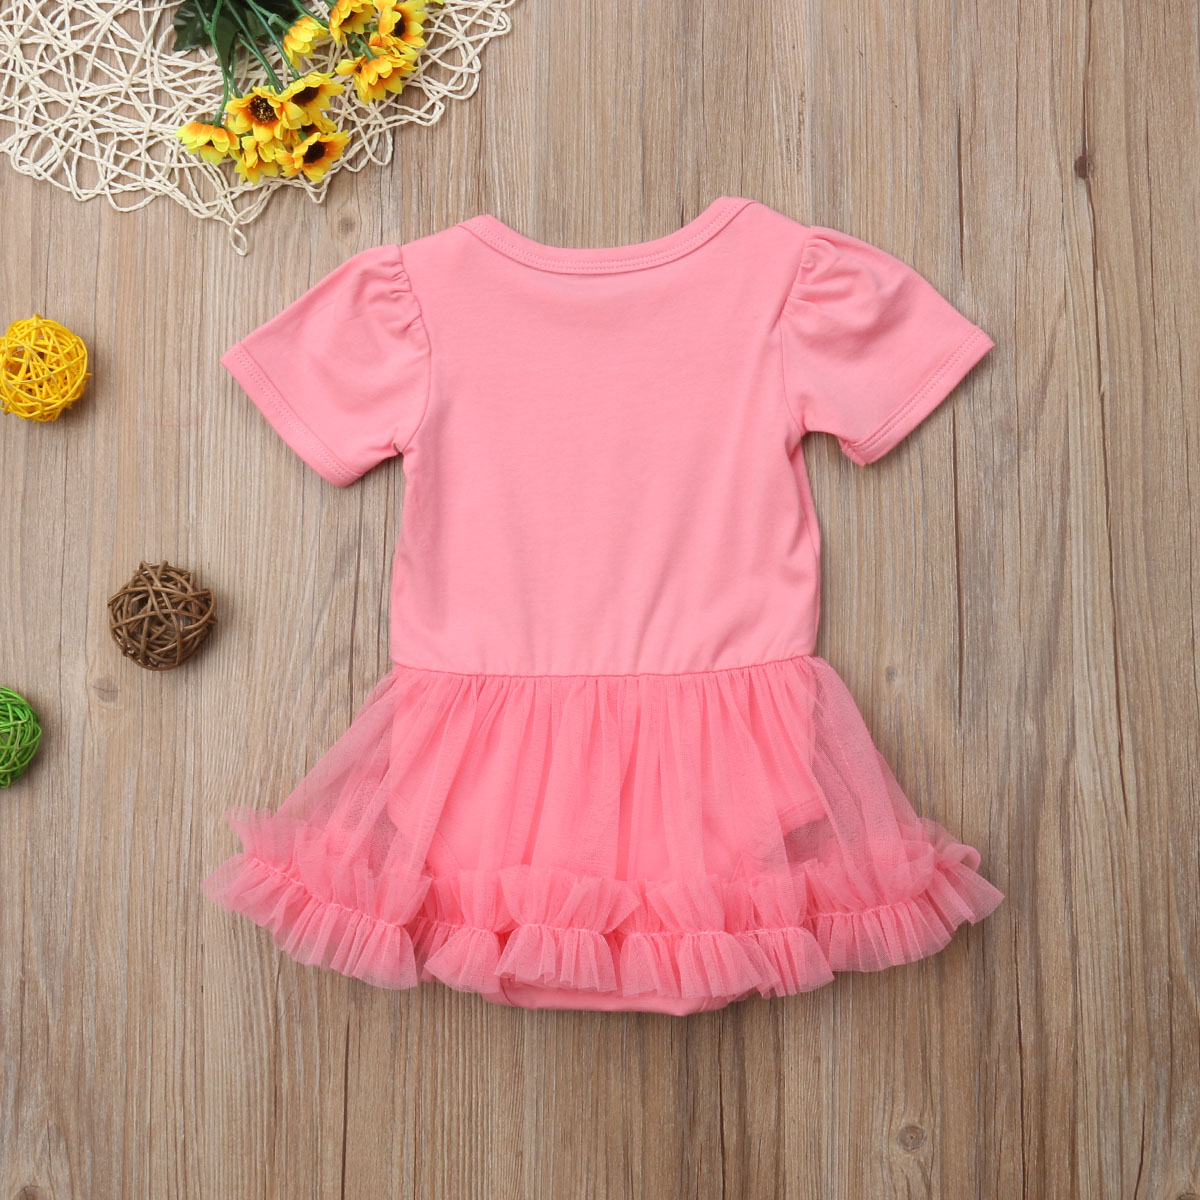 Princess Newborn Baby Girls Short Sleeve Romper Jumpsuit Clothes Sunsuit Oufits 0 18M in Rompers from Mother Kids